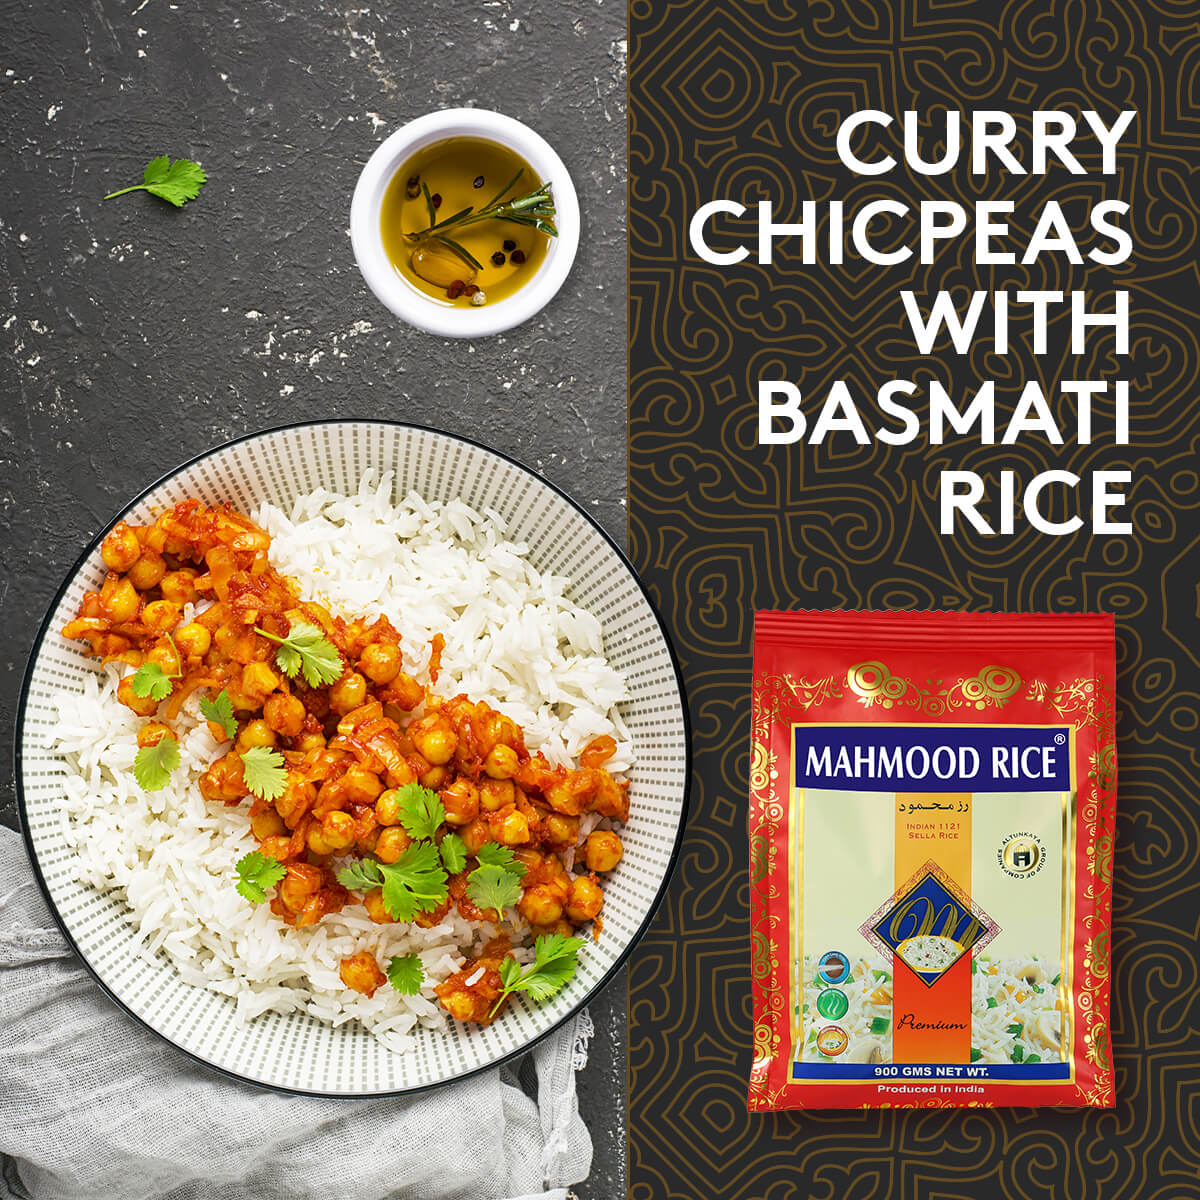 Curry Chicpeas with Basmati Rice